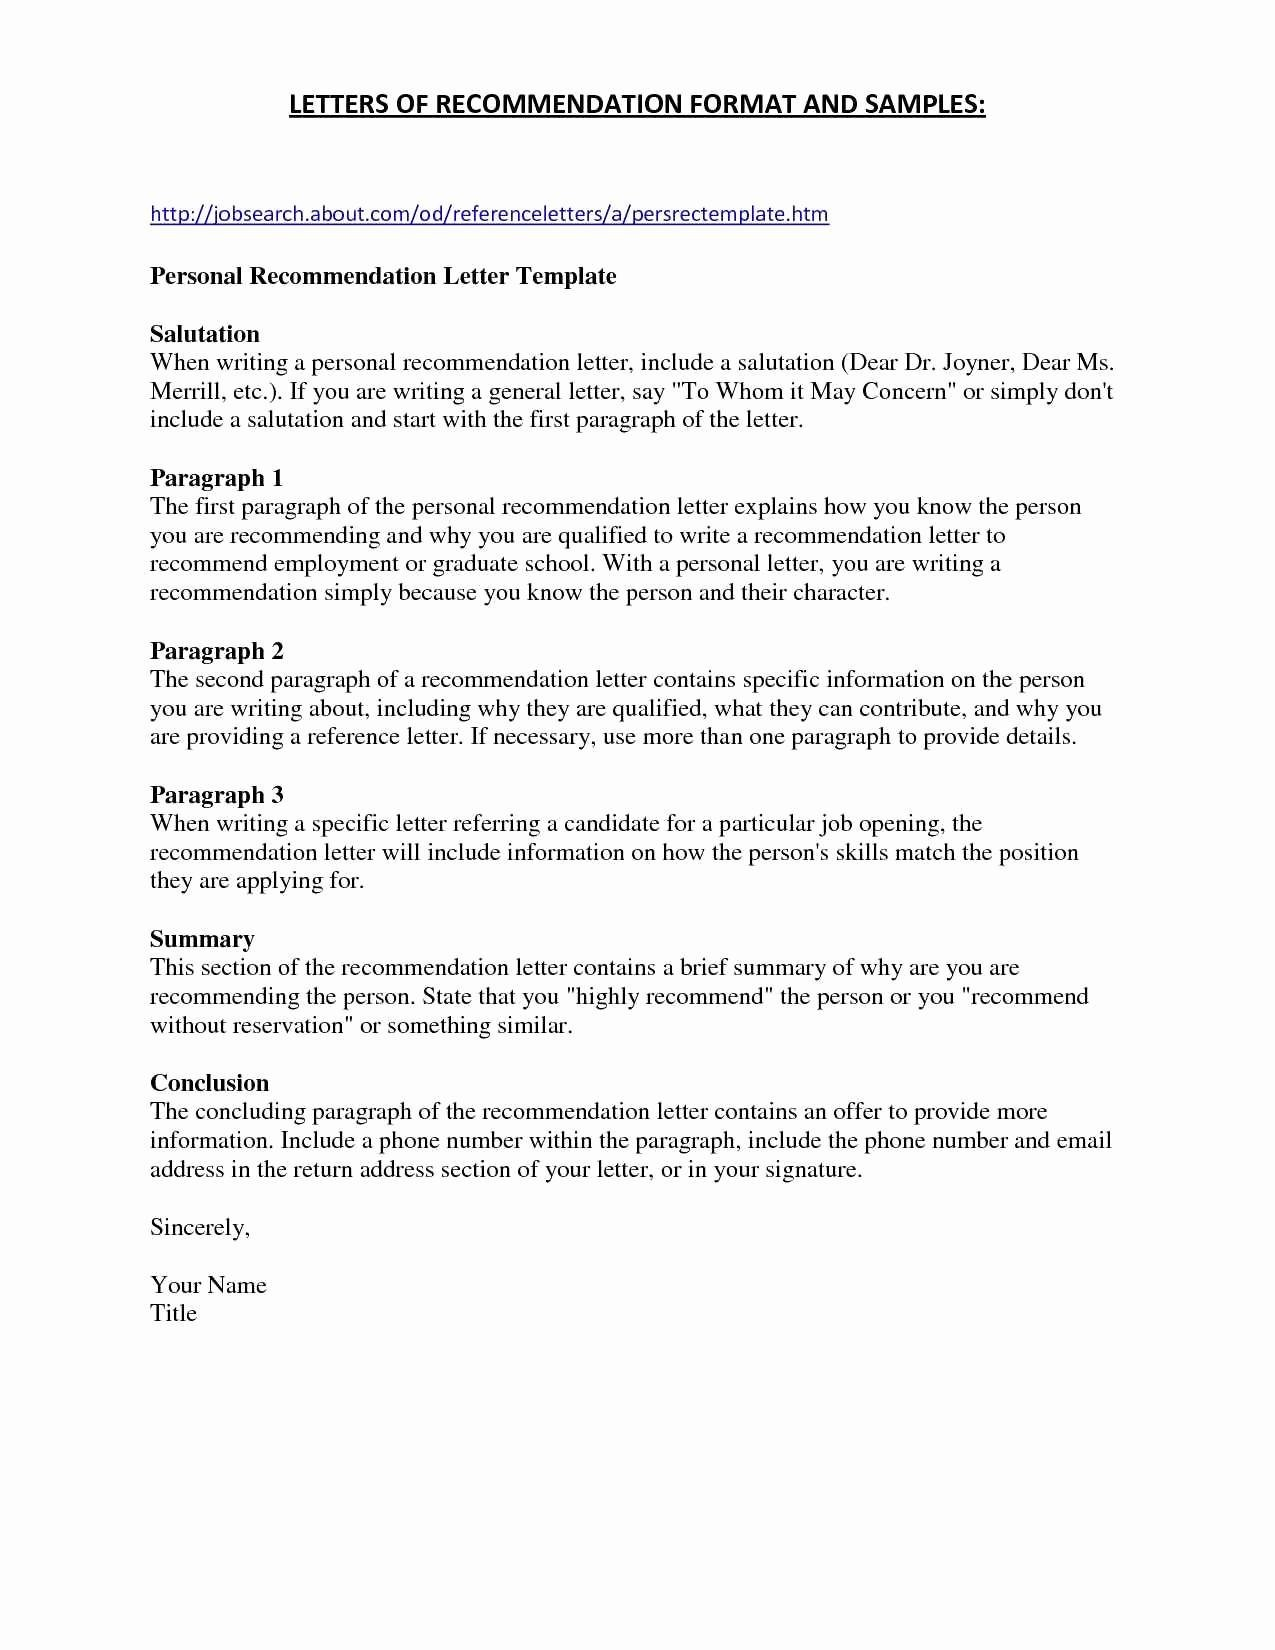 Missionary Prayer Letter Template - Examples Cover Letter for Resume Luxury Types Interest Letters